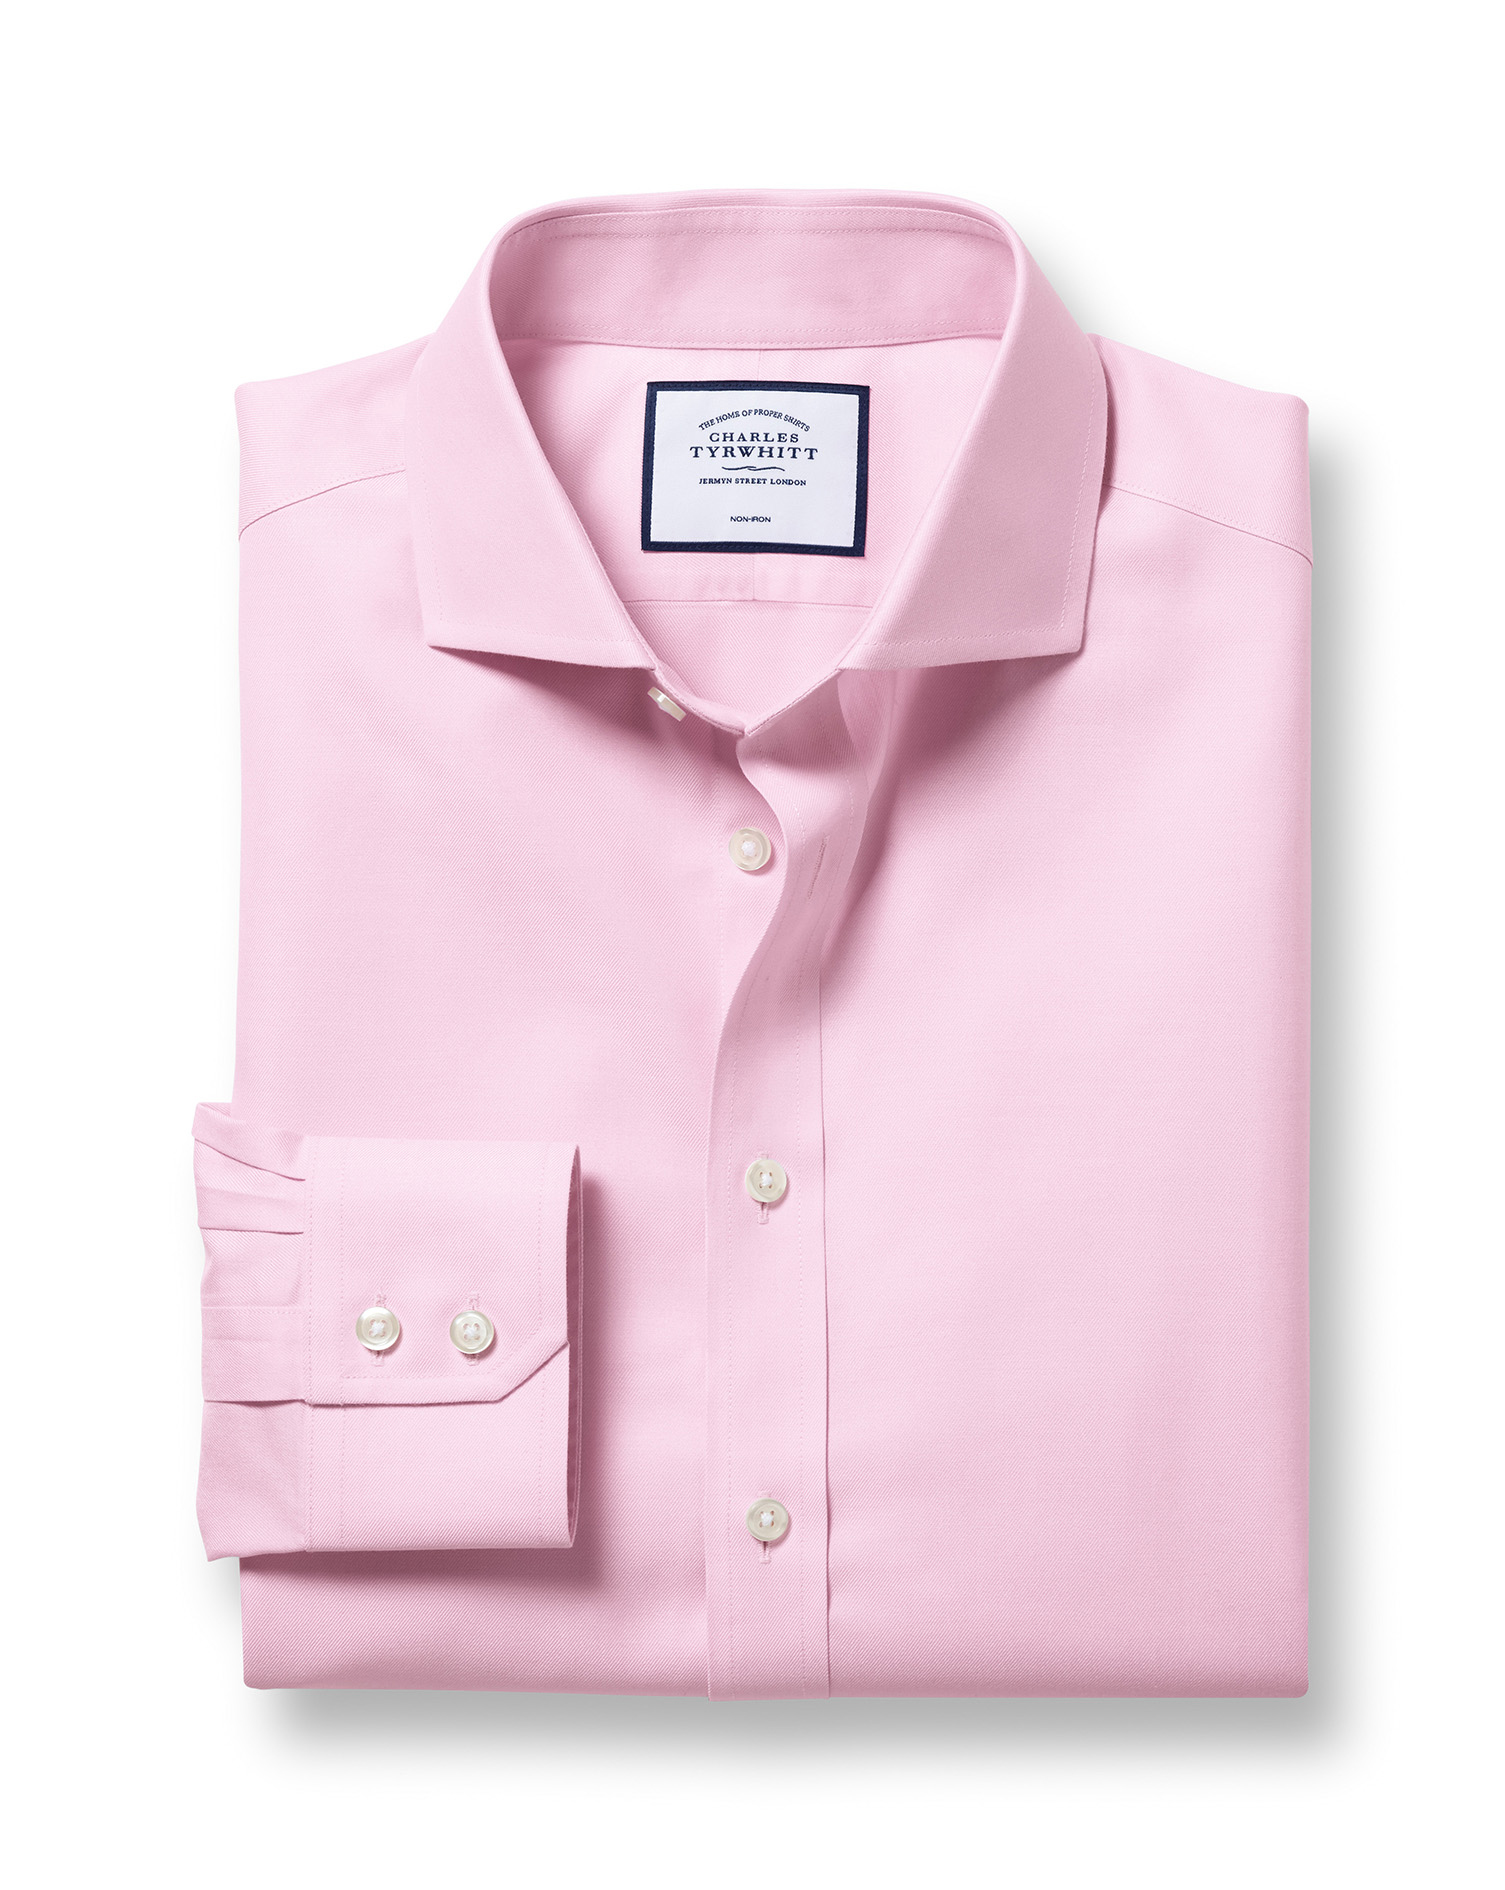 Slim Fit Pink Non-Iron Twill Cutaway Cotton Formal Shirt Double Cuff Size 16.5/34 by Charles Tyrwhit